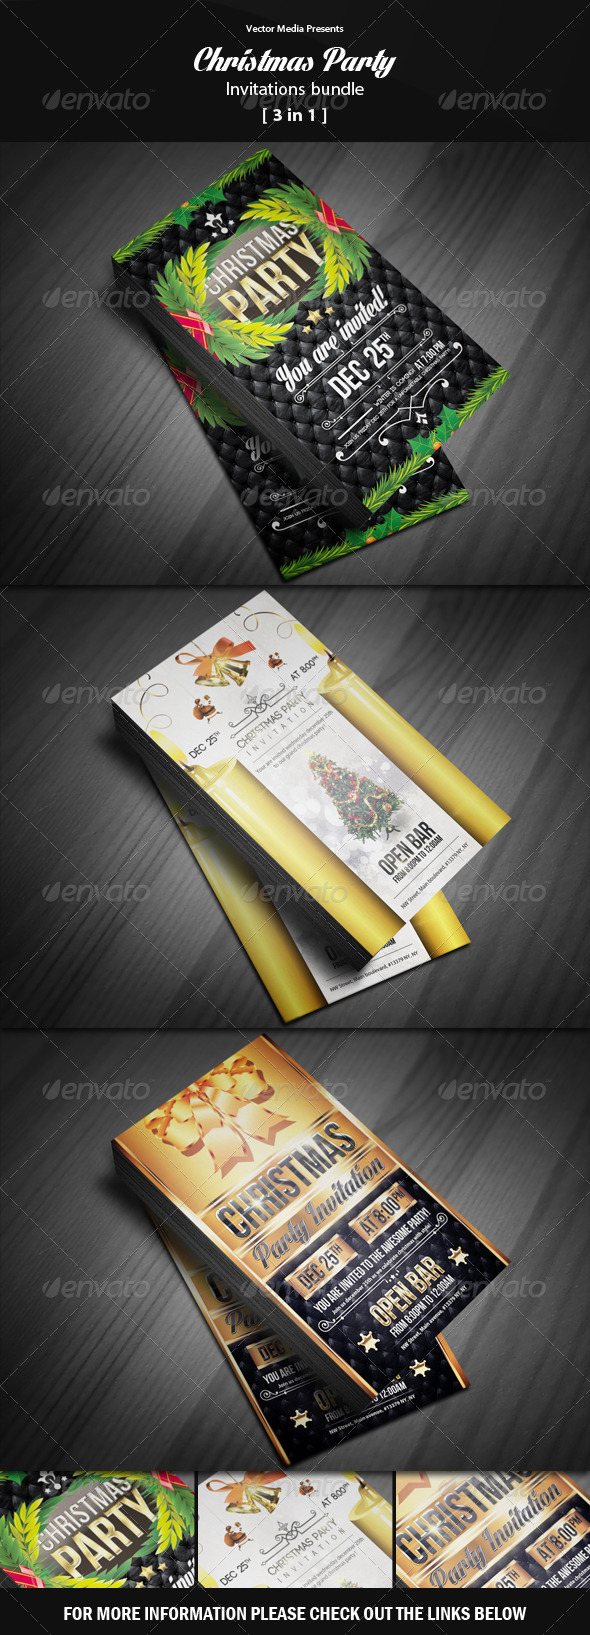 Christmas Party Invitations Bundle